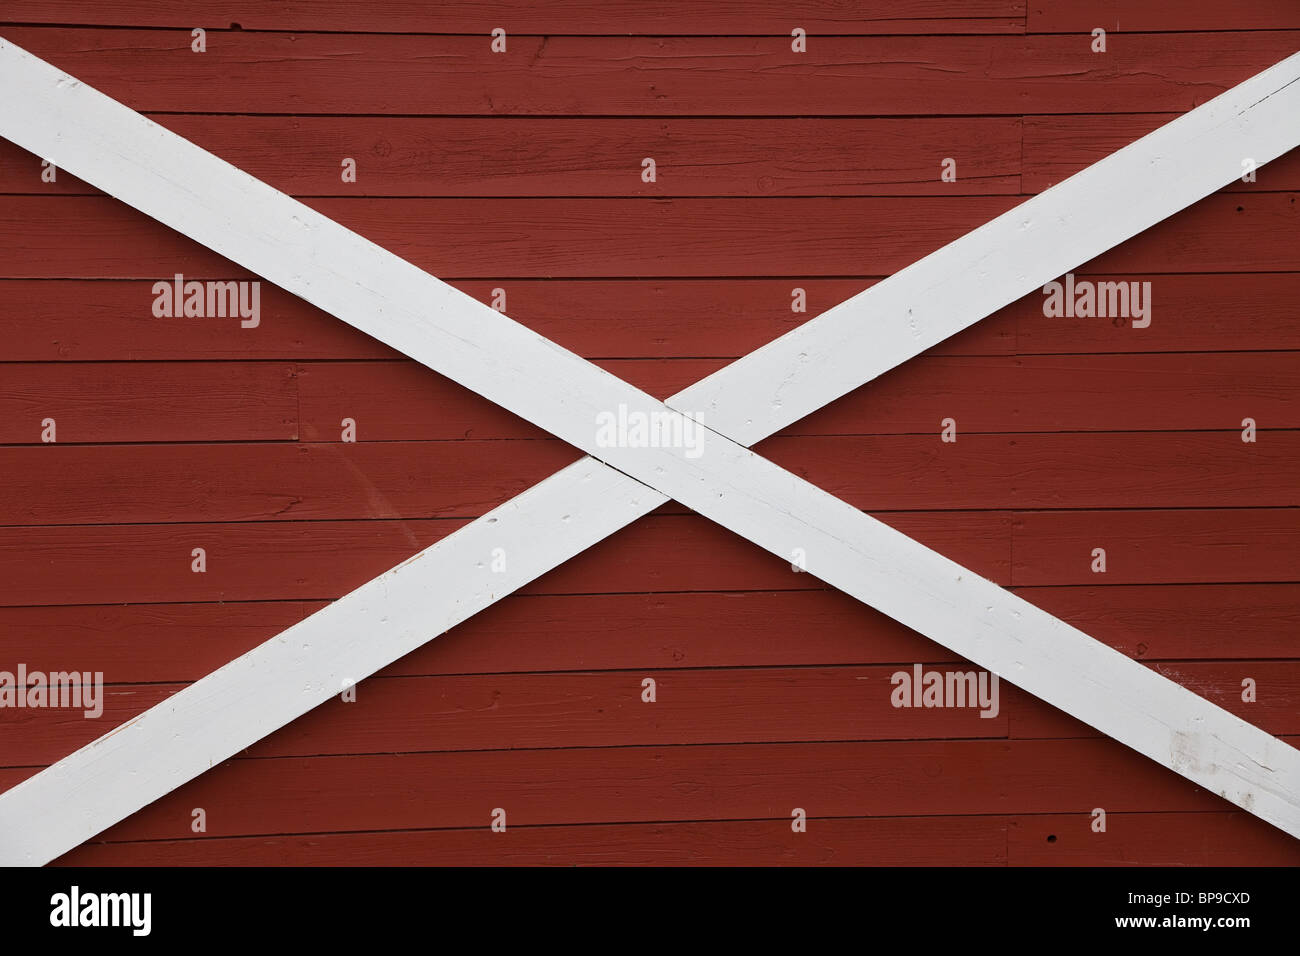 Barn Red Wood Wall for background - Stock Image